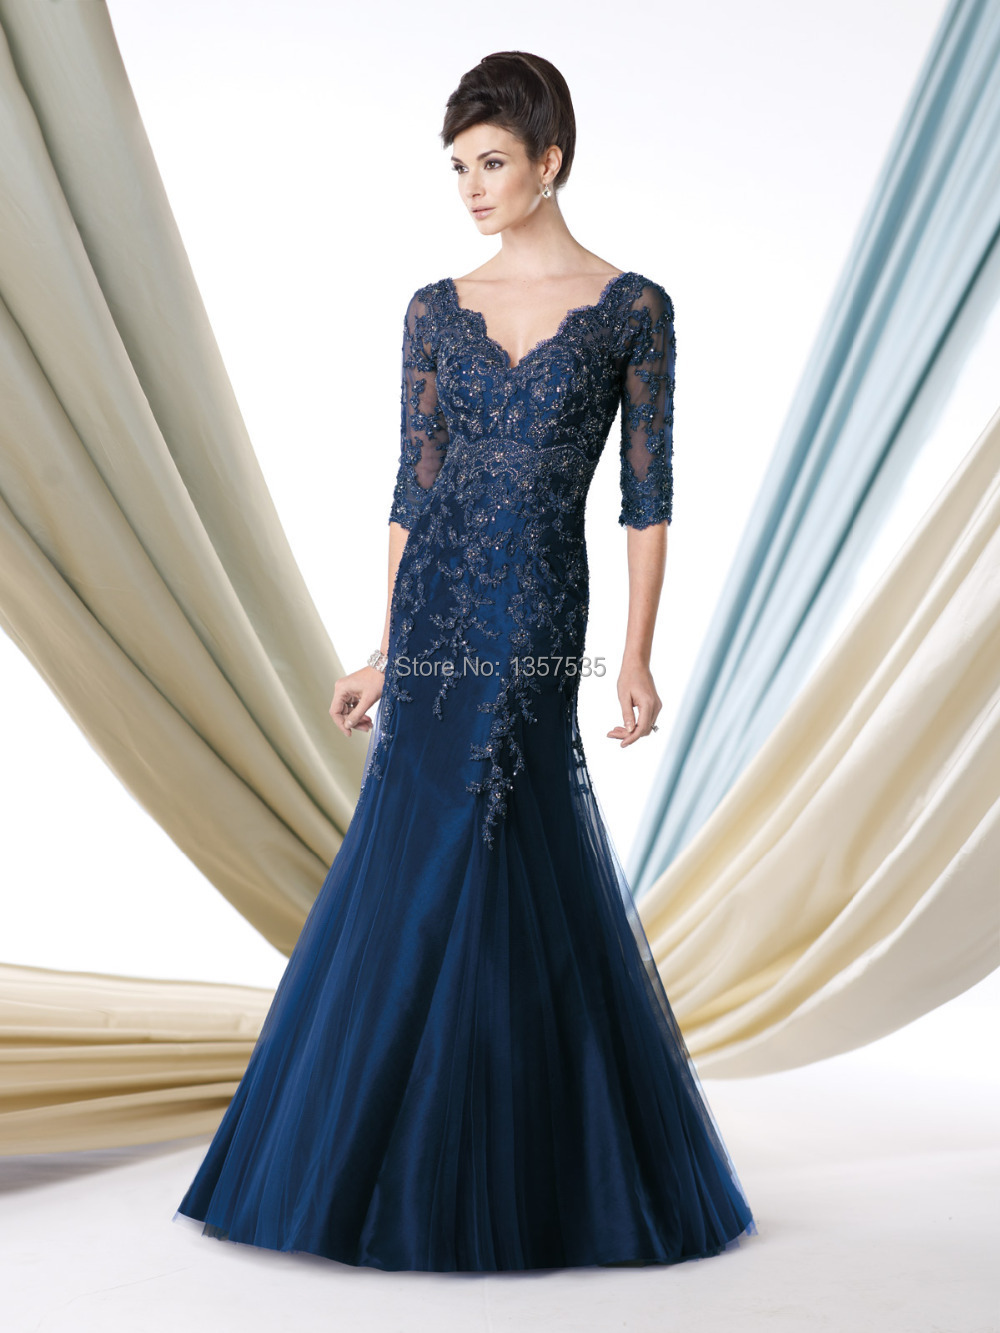 Wedding Party Dresses Miami - Holiday Dresses